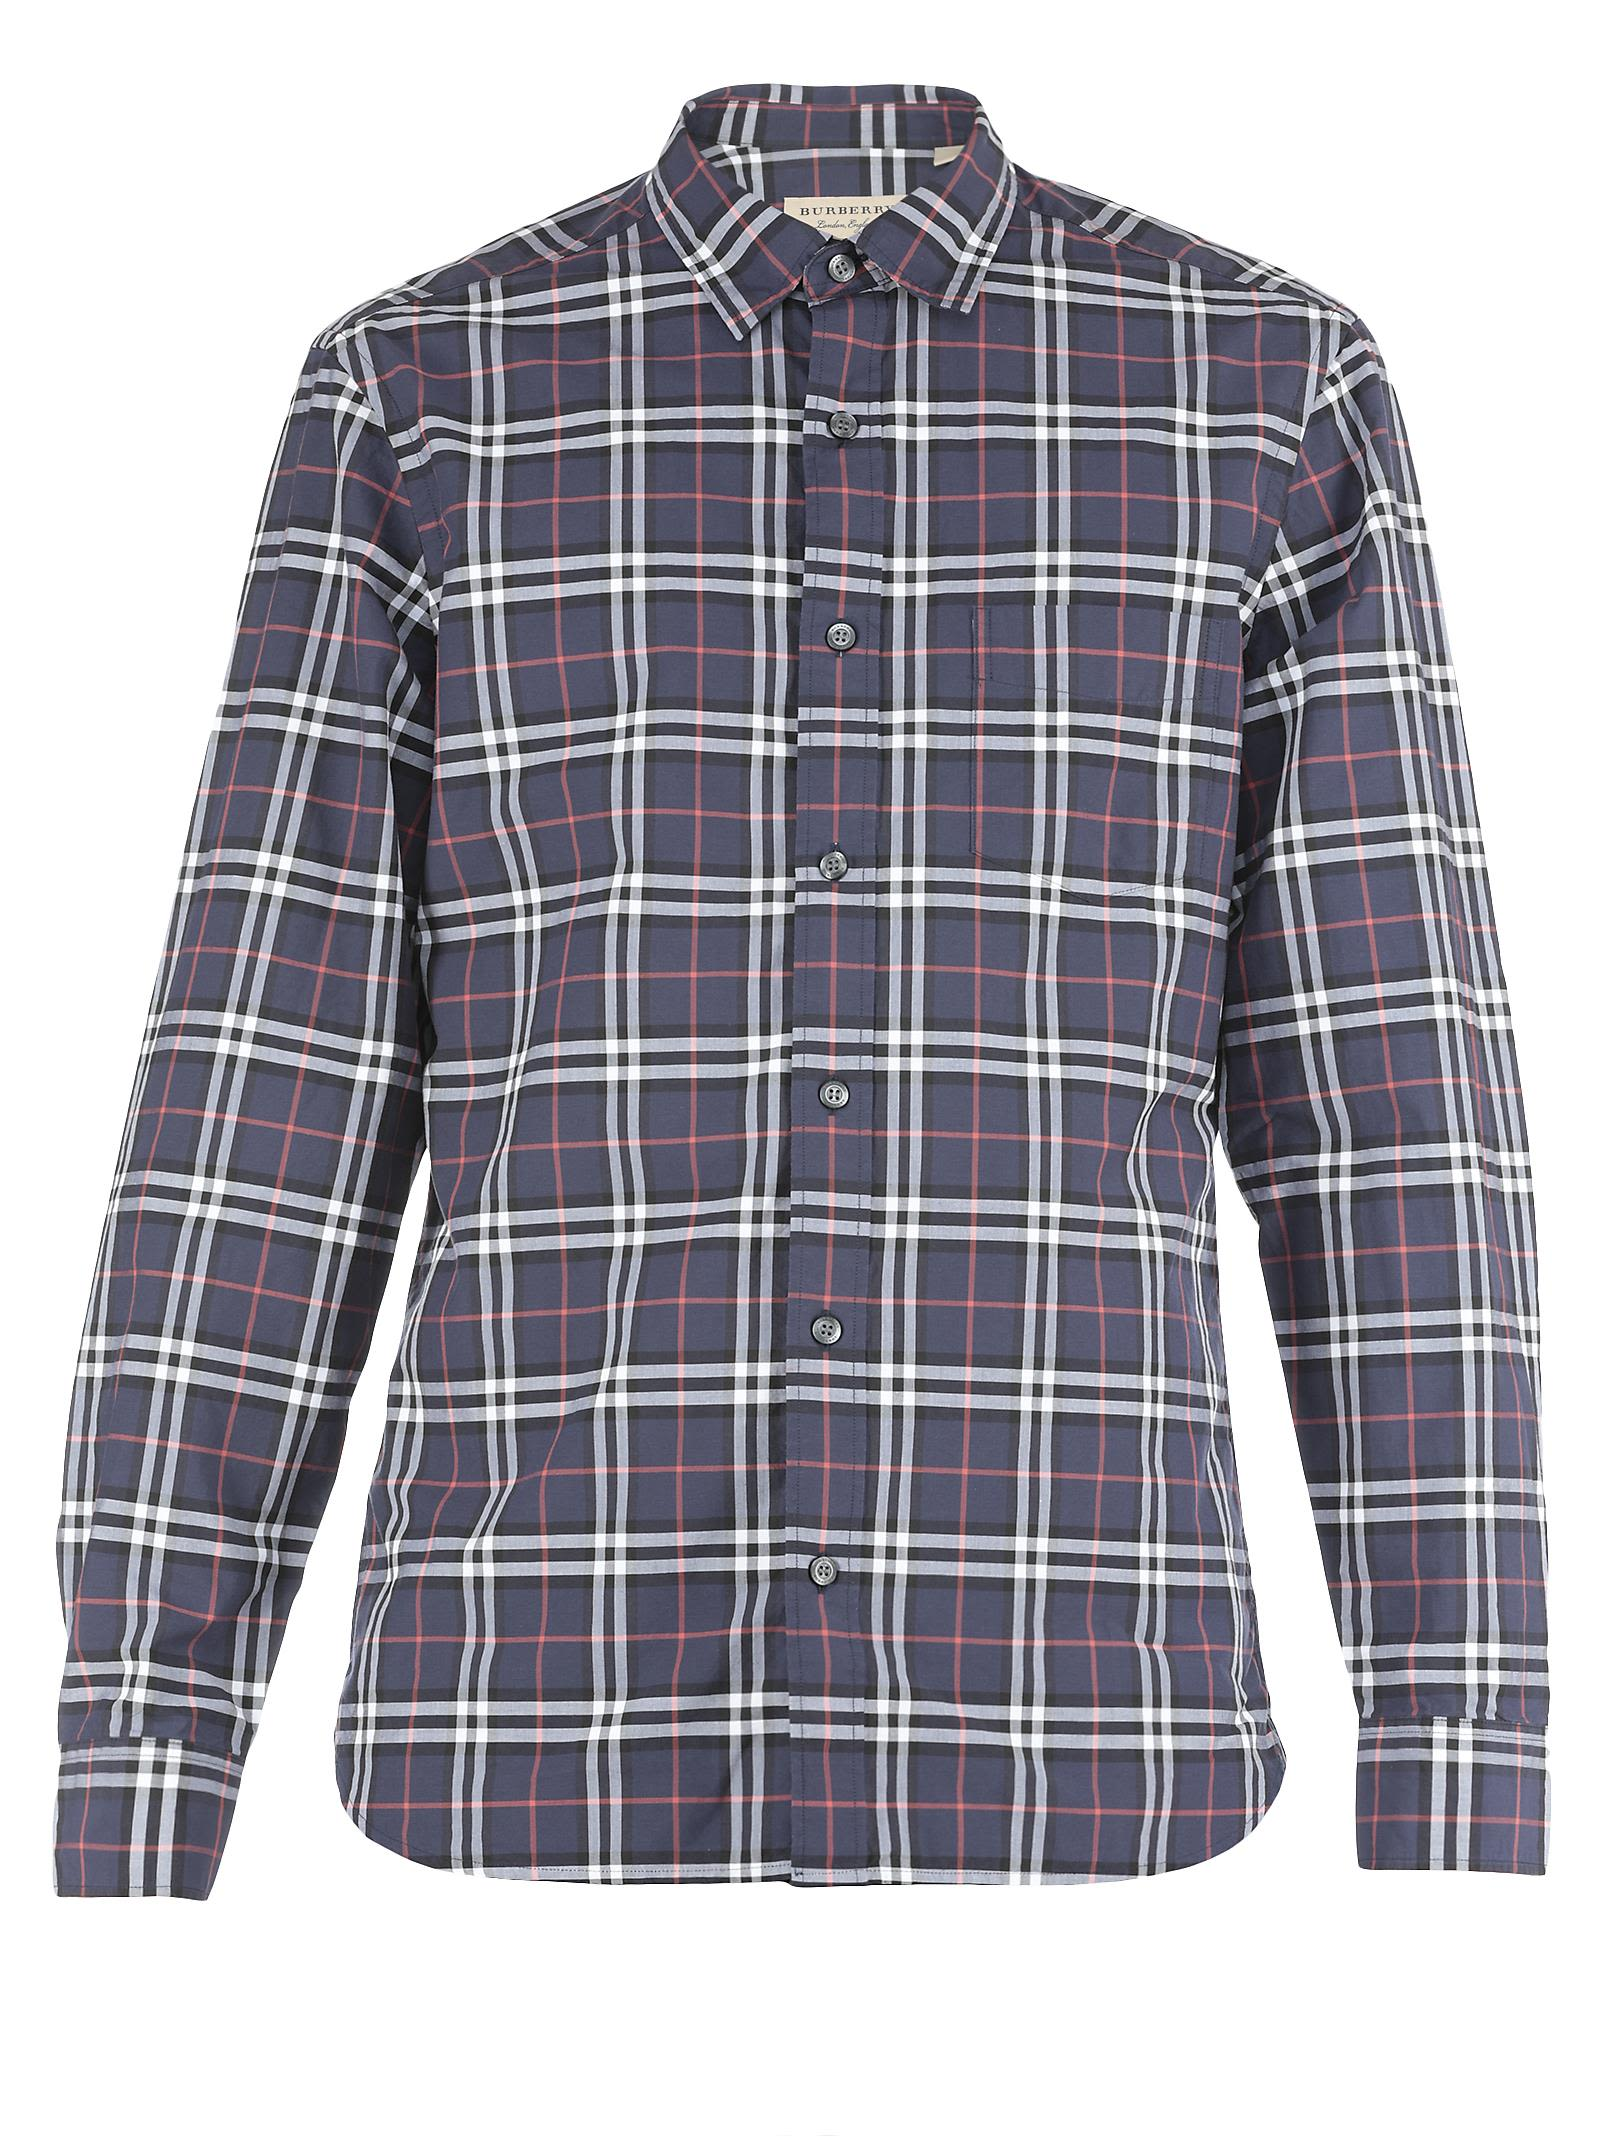 italist | Best price in the market for Burberry Burberry Alexander Shirt - NAVY - 10627227 | italist